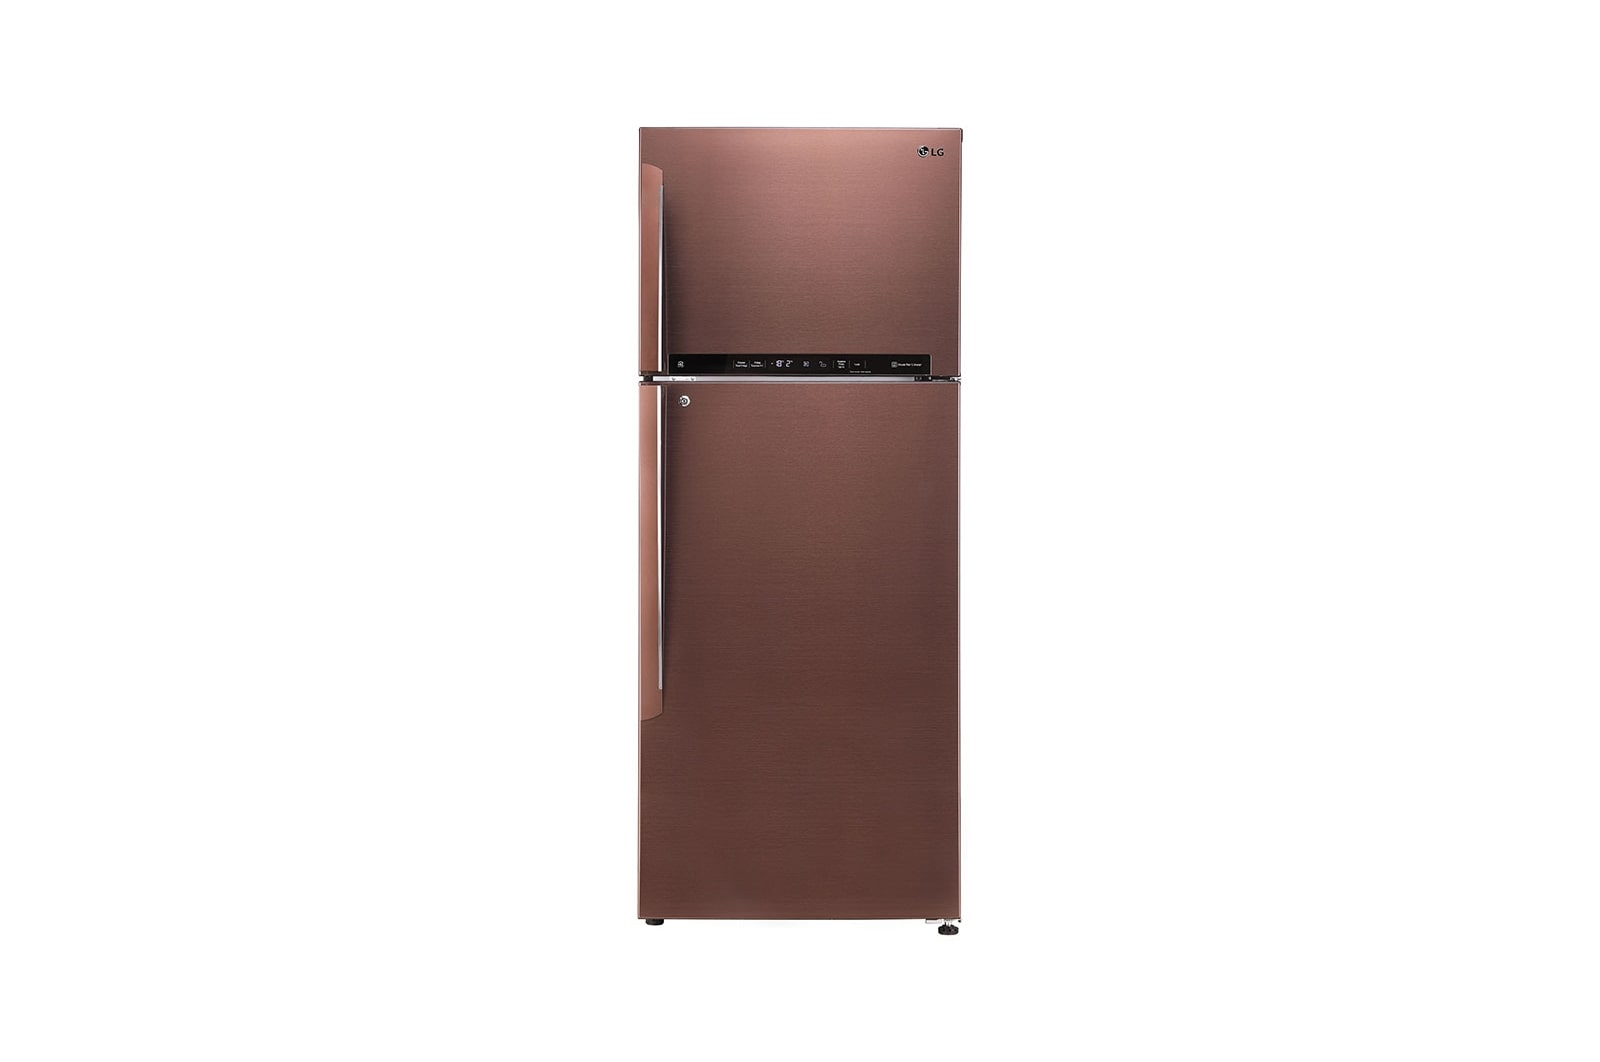 LG GL-T502FASN 471L Double Door Frost Free Refrigerator With